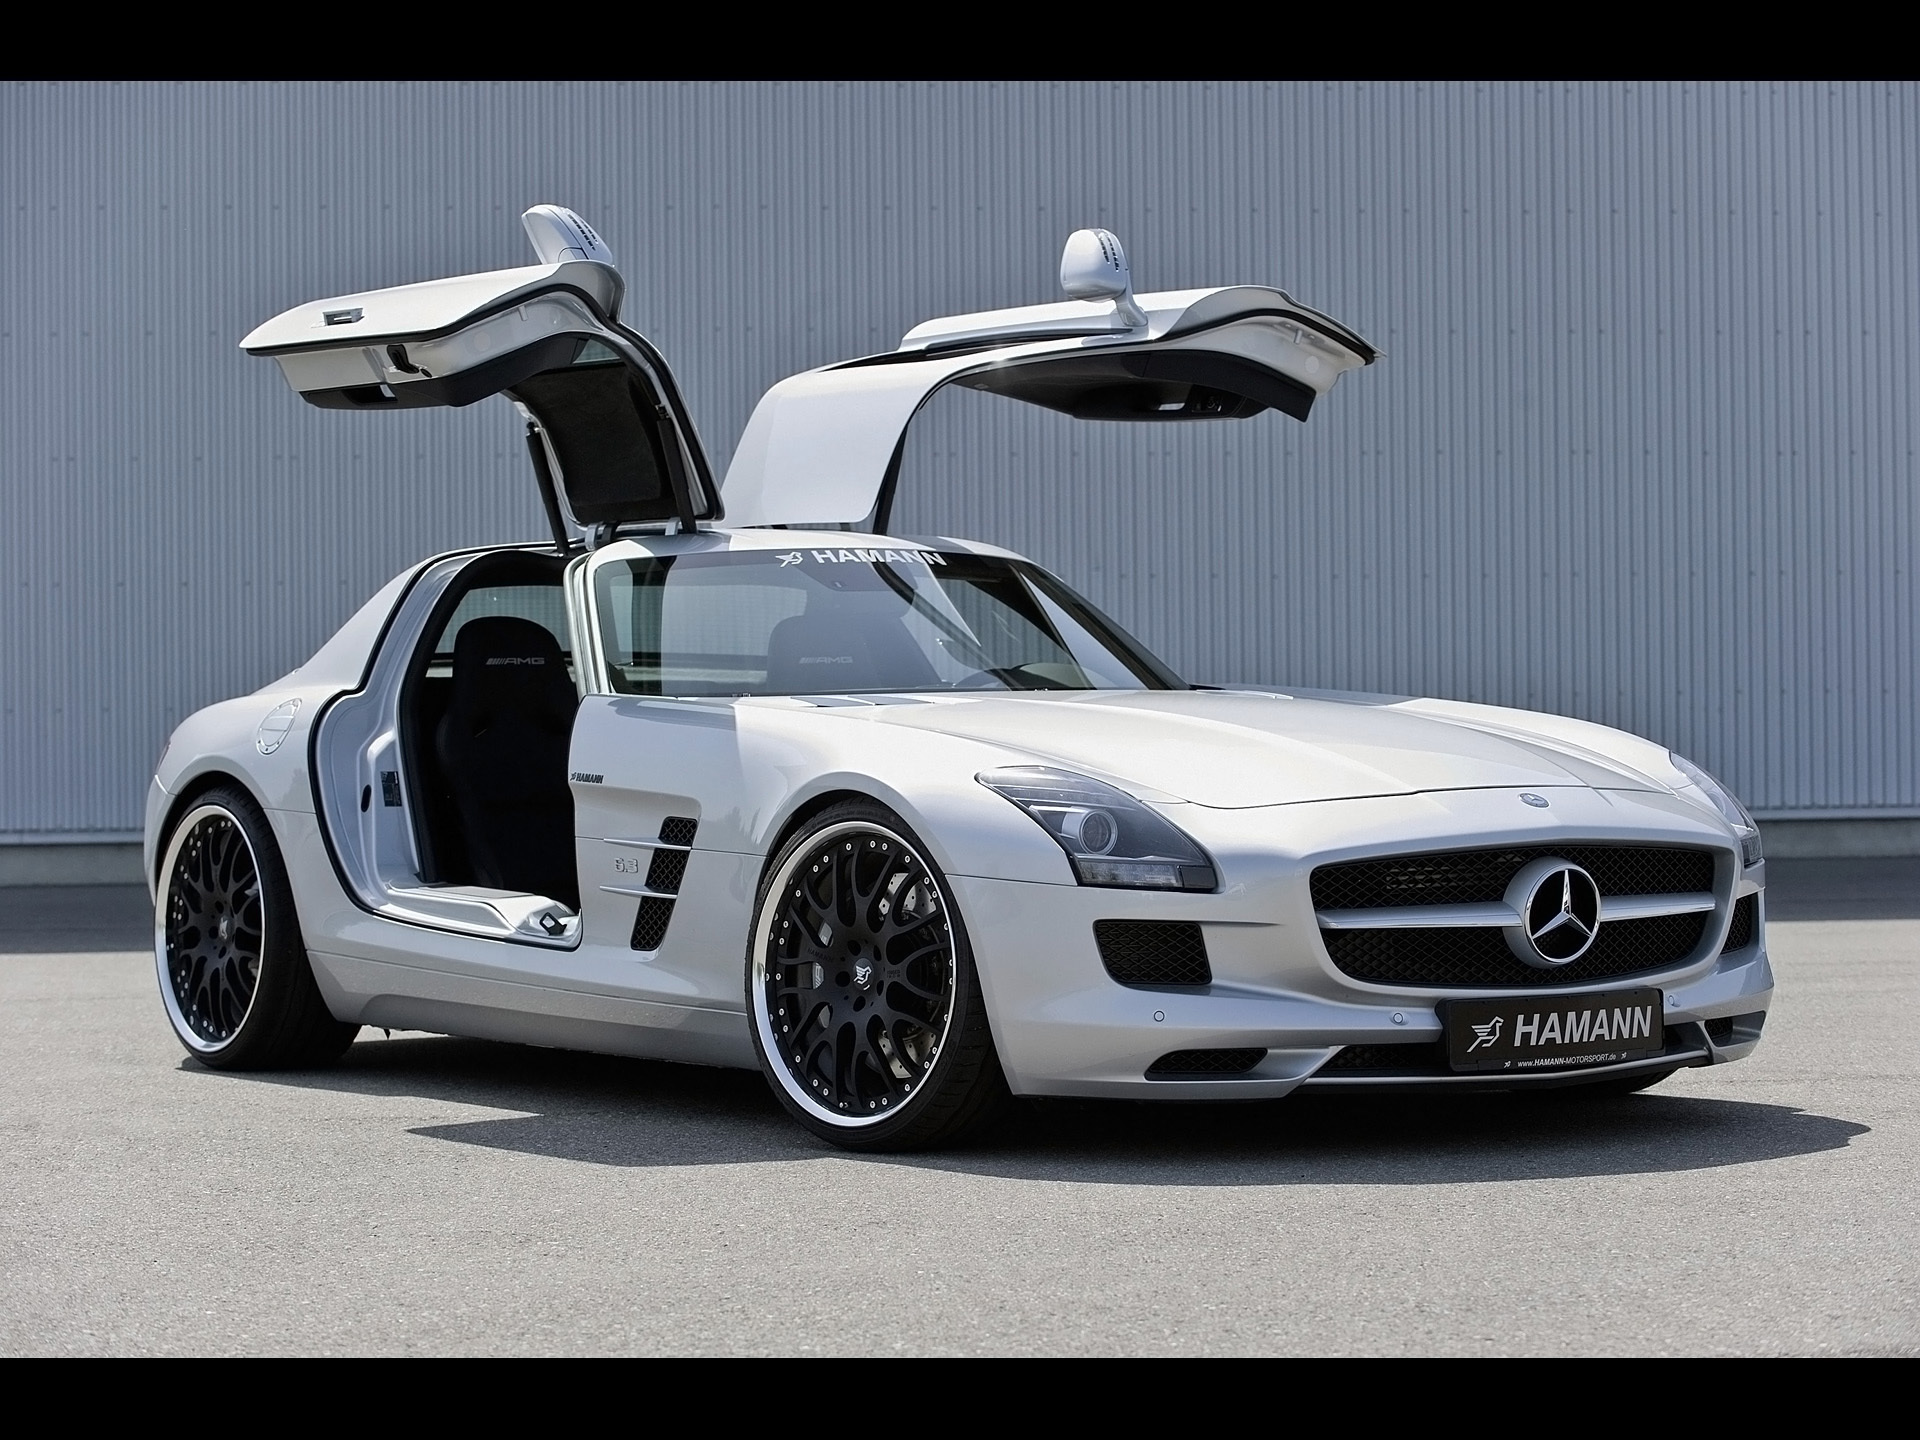 hamann mercedes benz slk amg mercedes benz wallpaper 14007519. Cars Review. Best American Auto & Cars Review